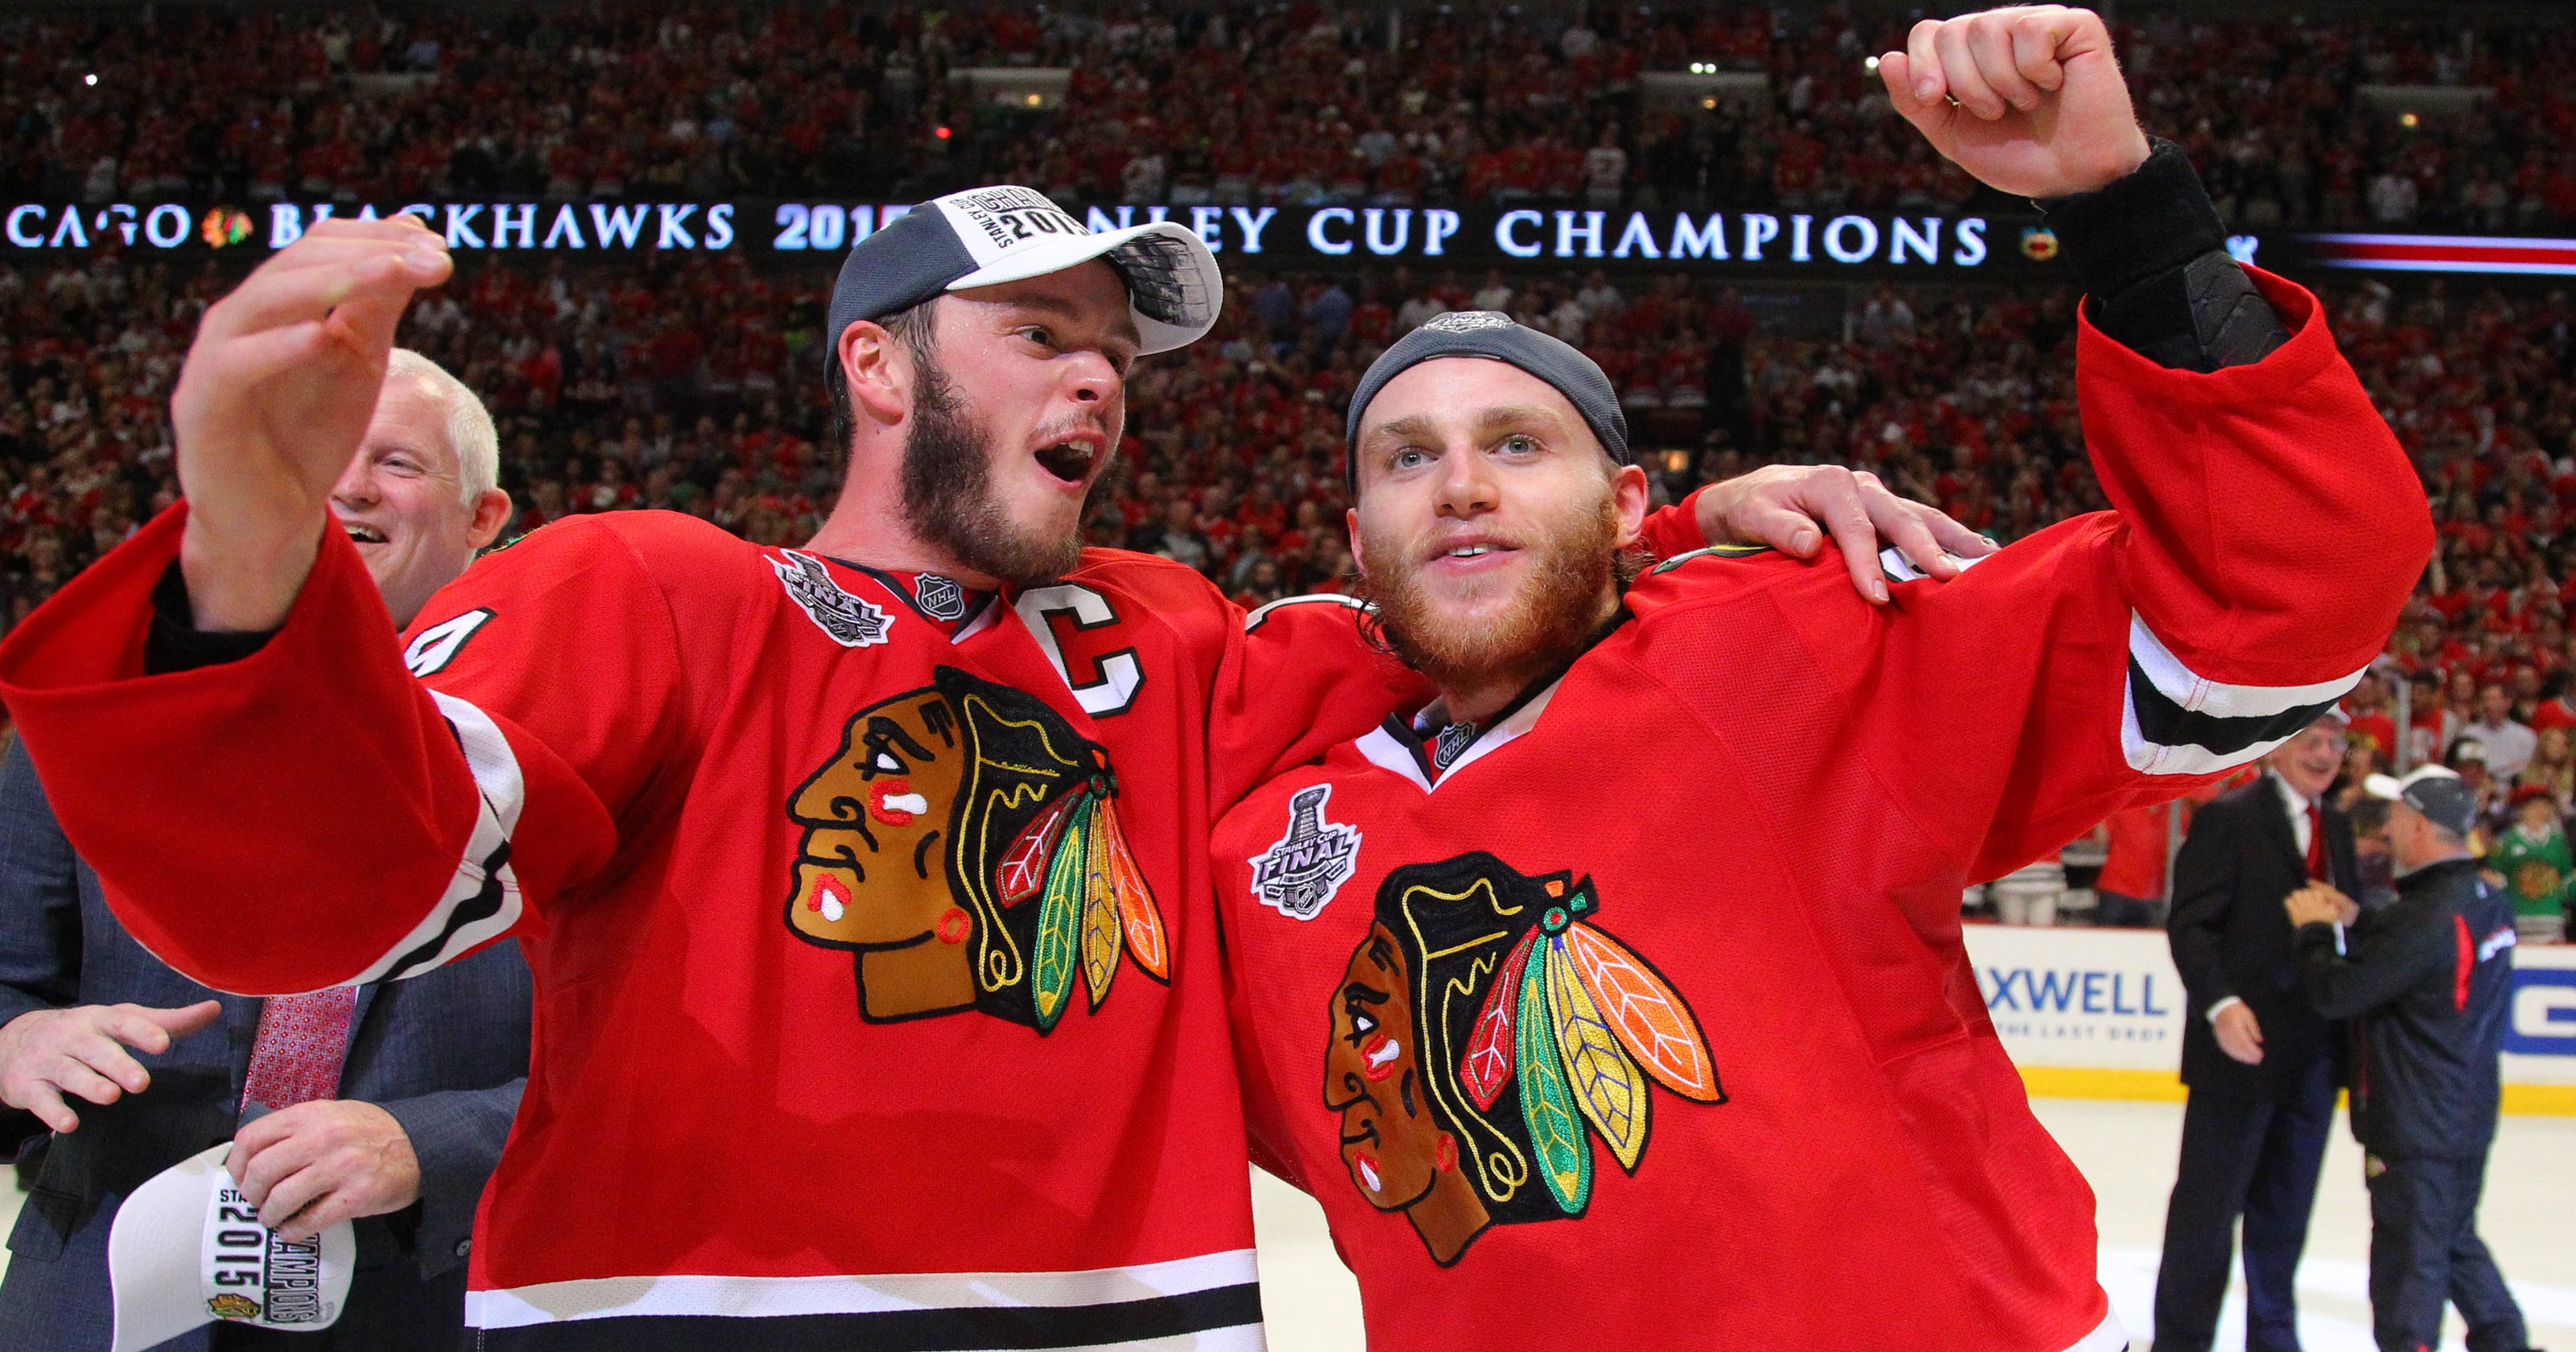 b427e1d30da These Blackhawks aren't just a dynasty, they're one of the best ...